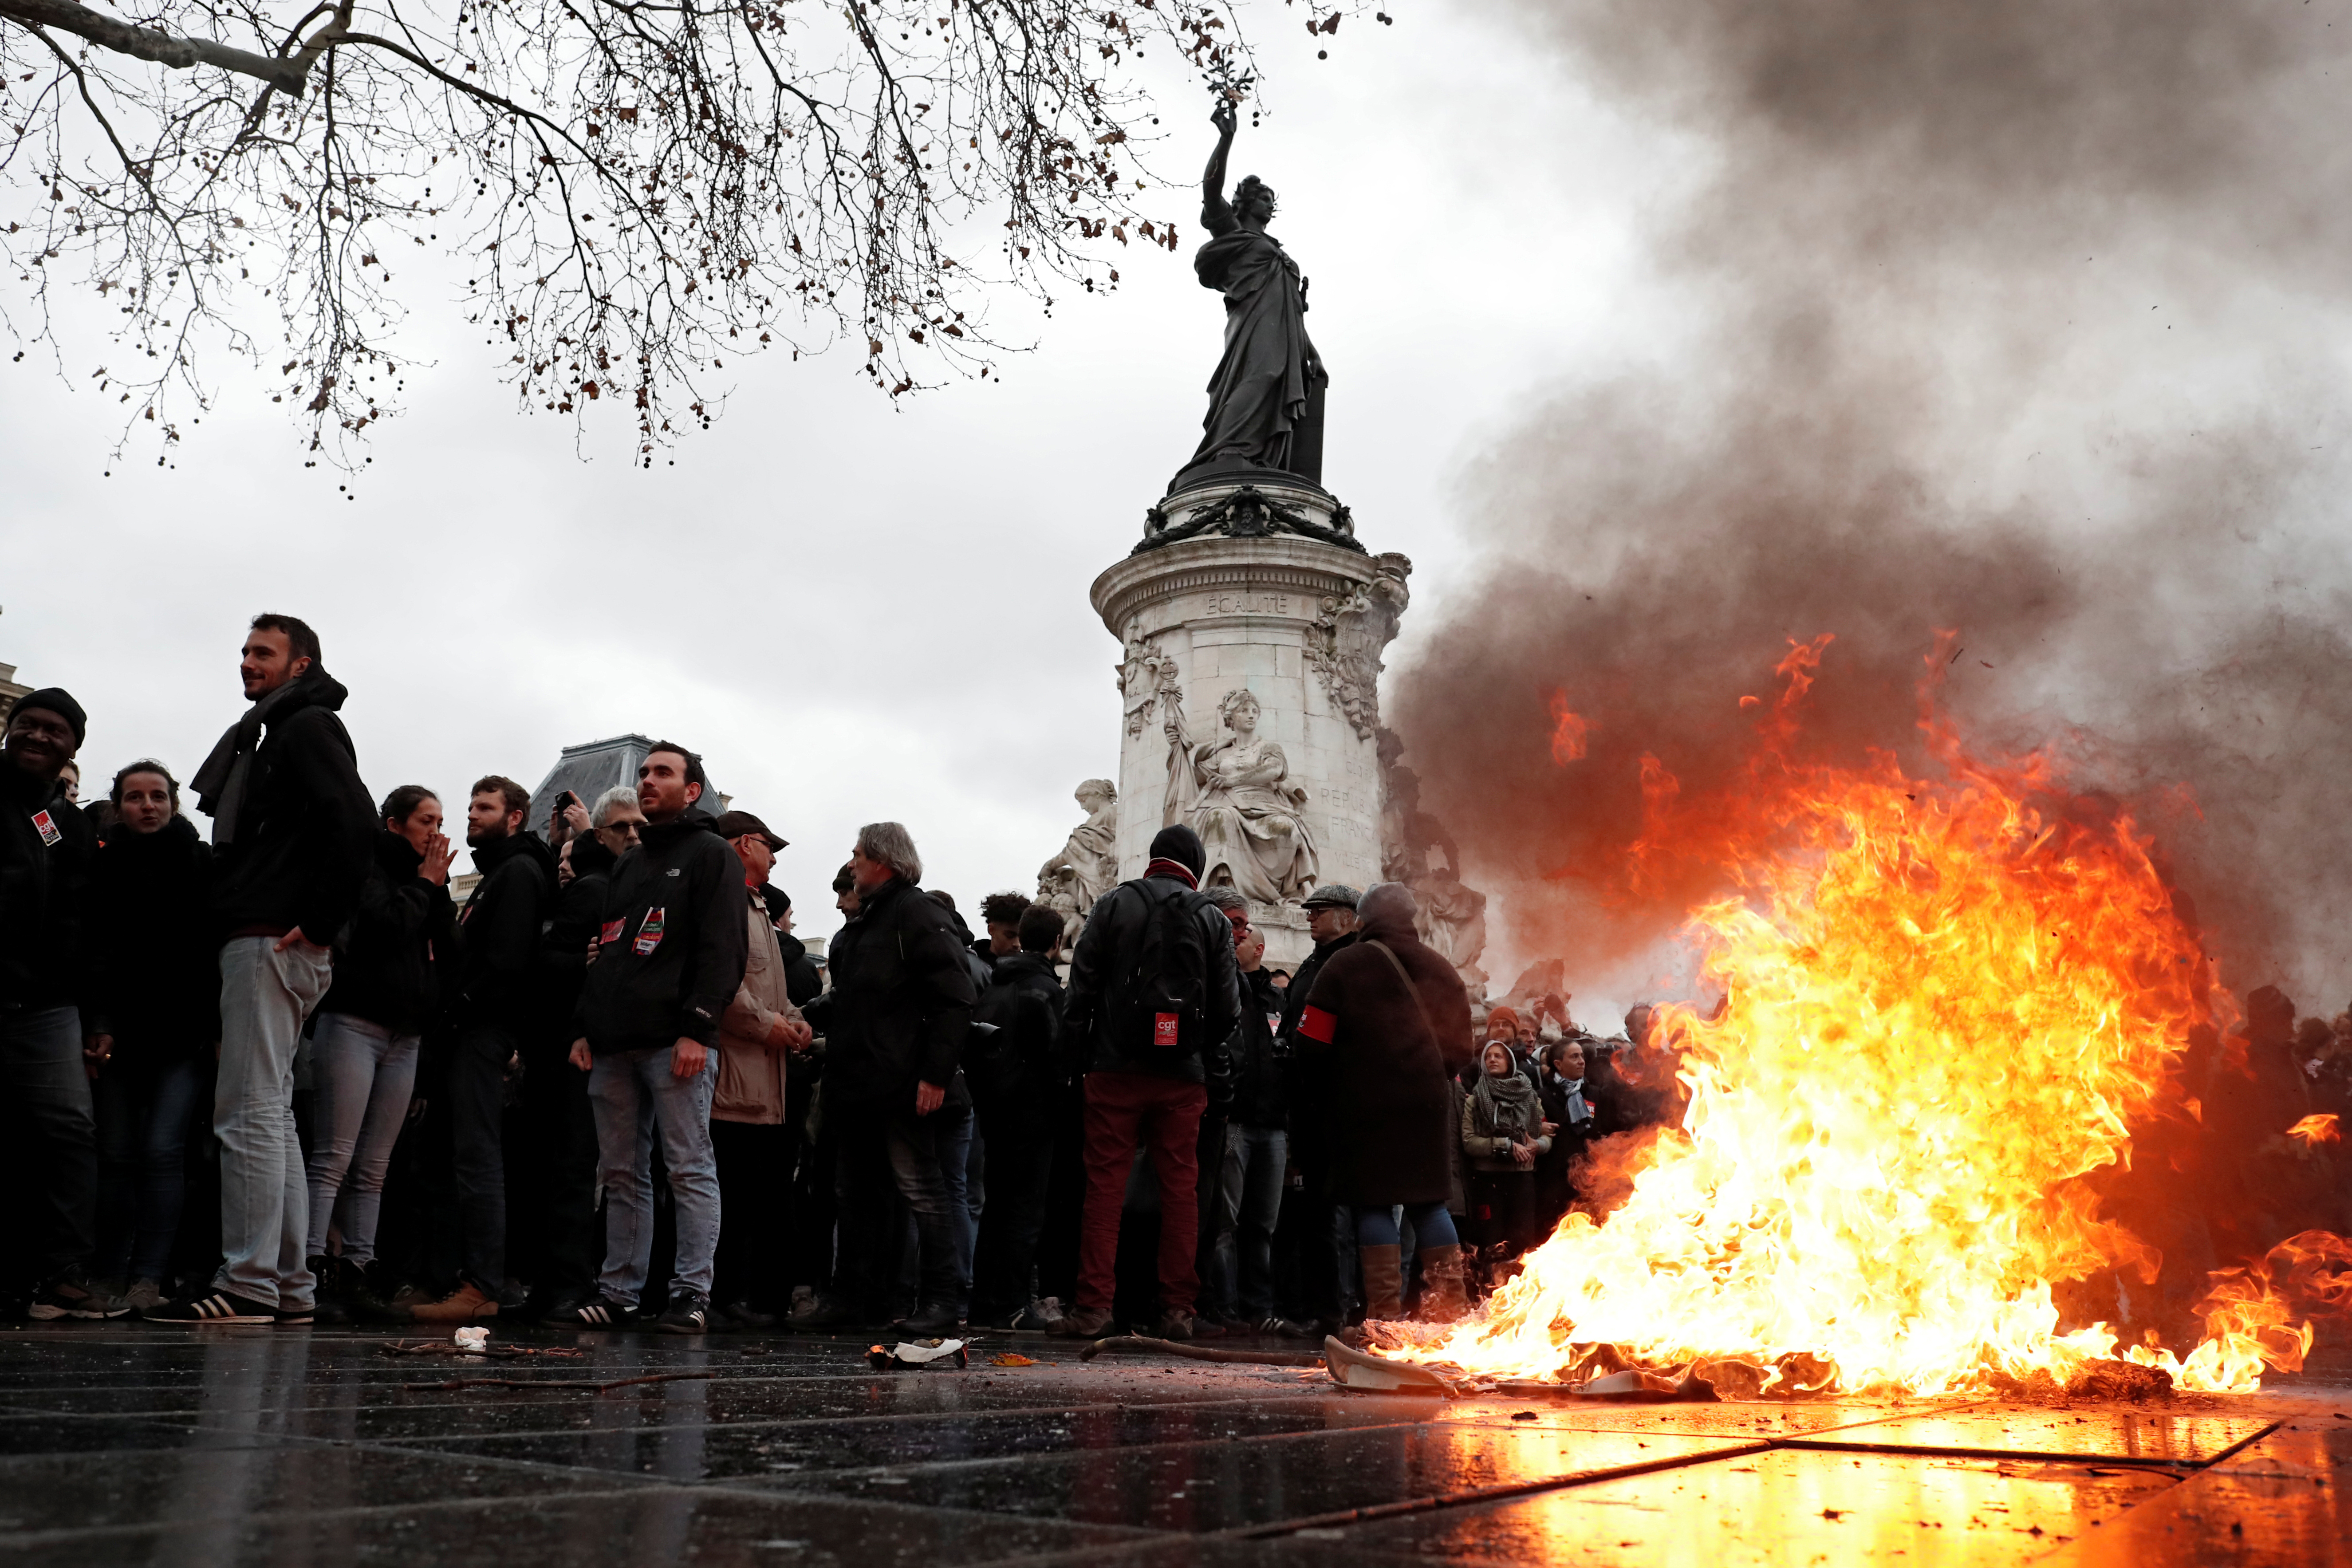 A trash bin burns as youths and high school students attend a demonstration to protest against the French government's reform plan, in Paris, France, December 7, 2018. REUTERS/Benoit Tessier